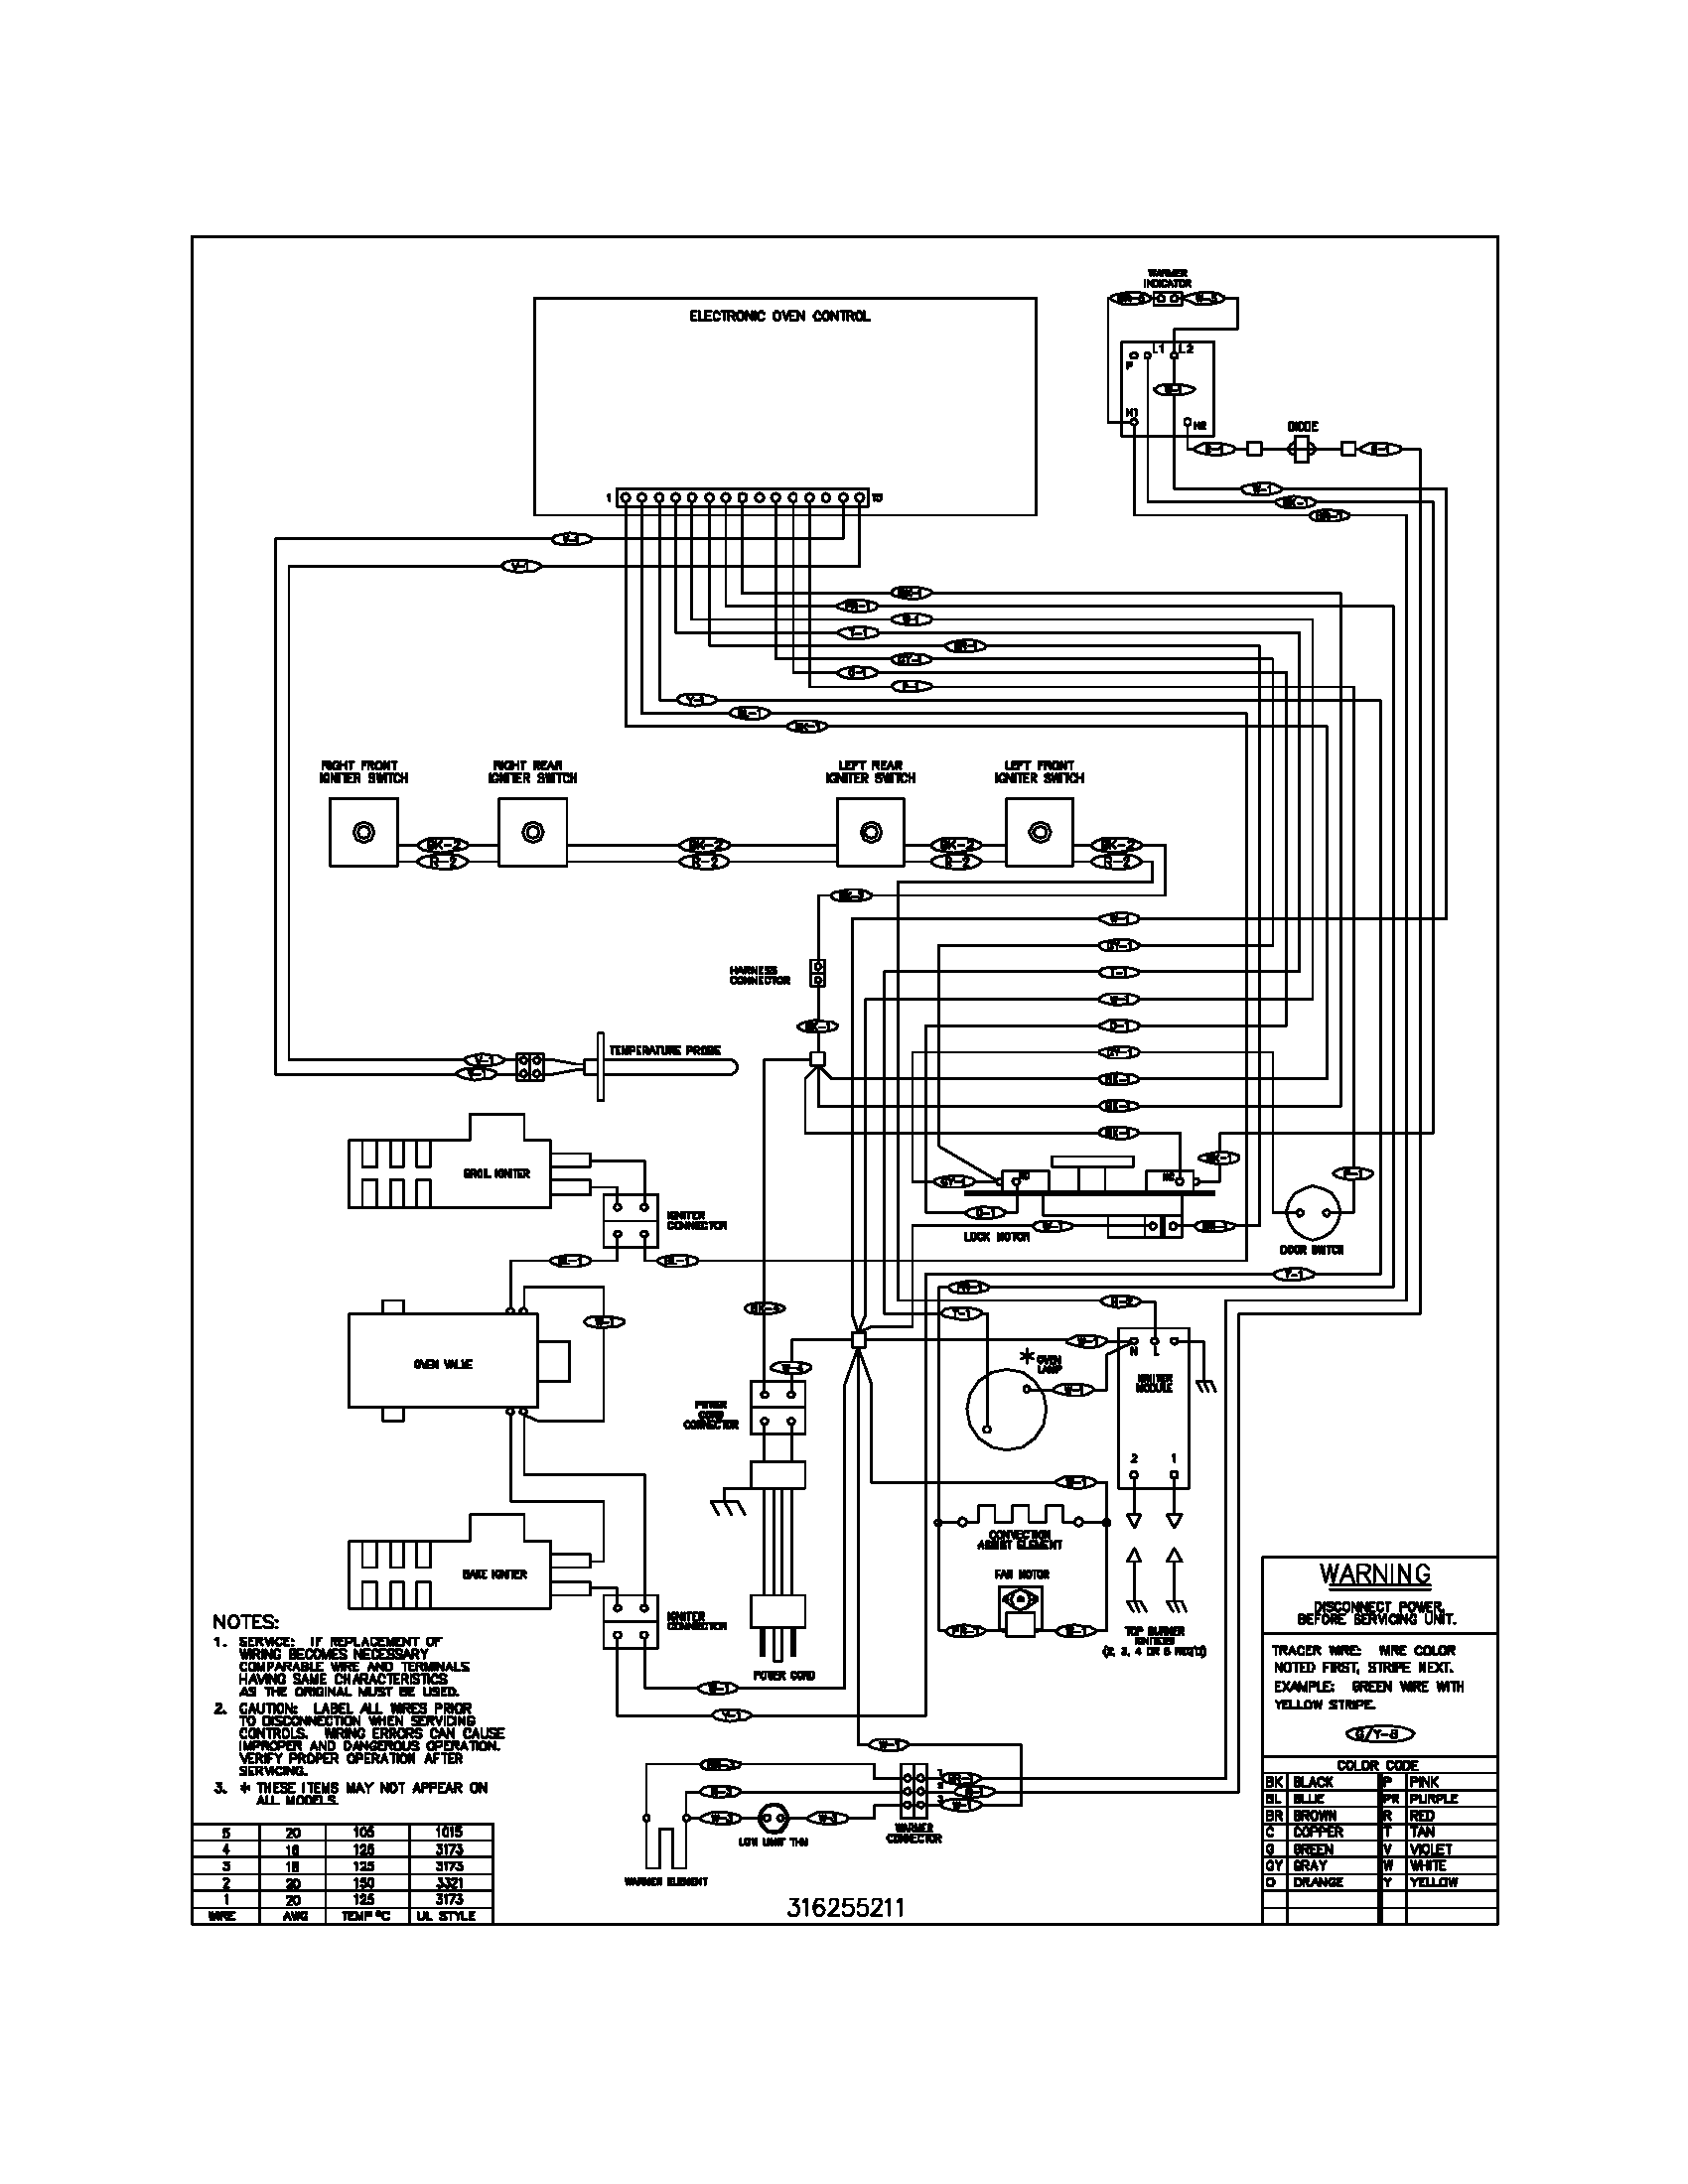 wiring diagram parts frigidaire plgf389ccc gas range timer stove clocks and appliance Frigidaire Refrigerator Troubleshooting at n-0.co